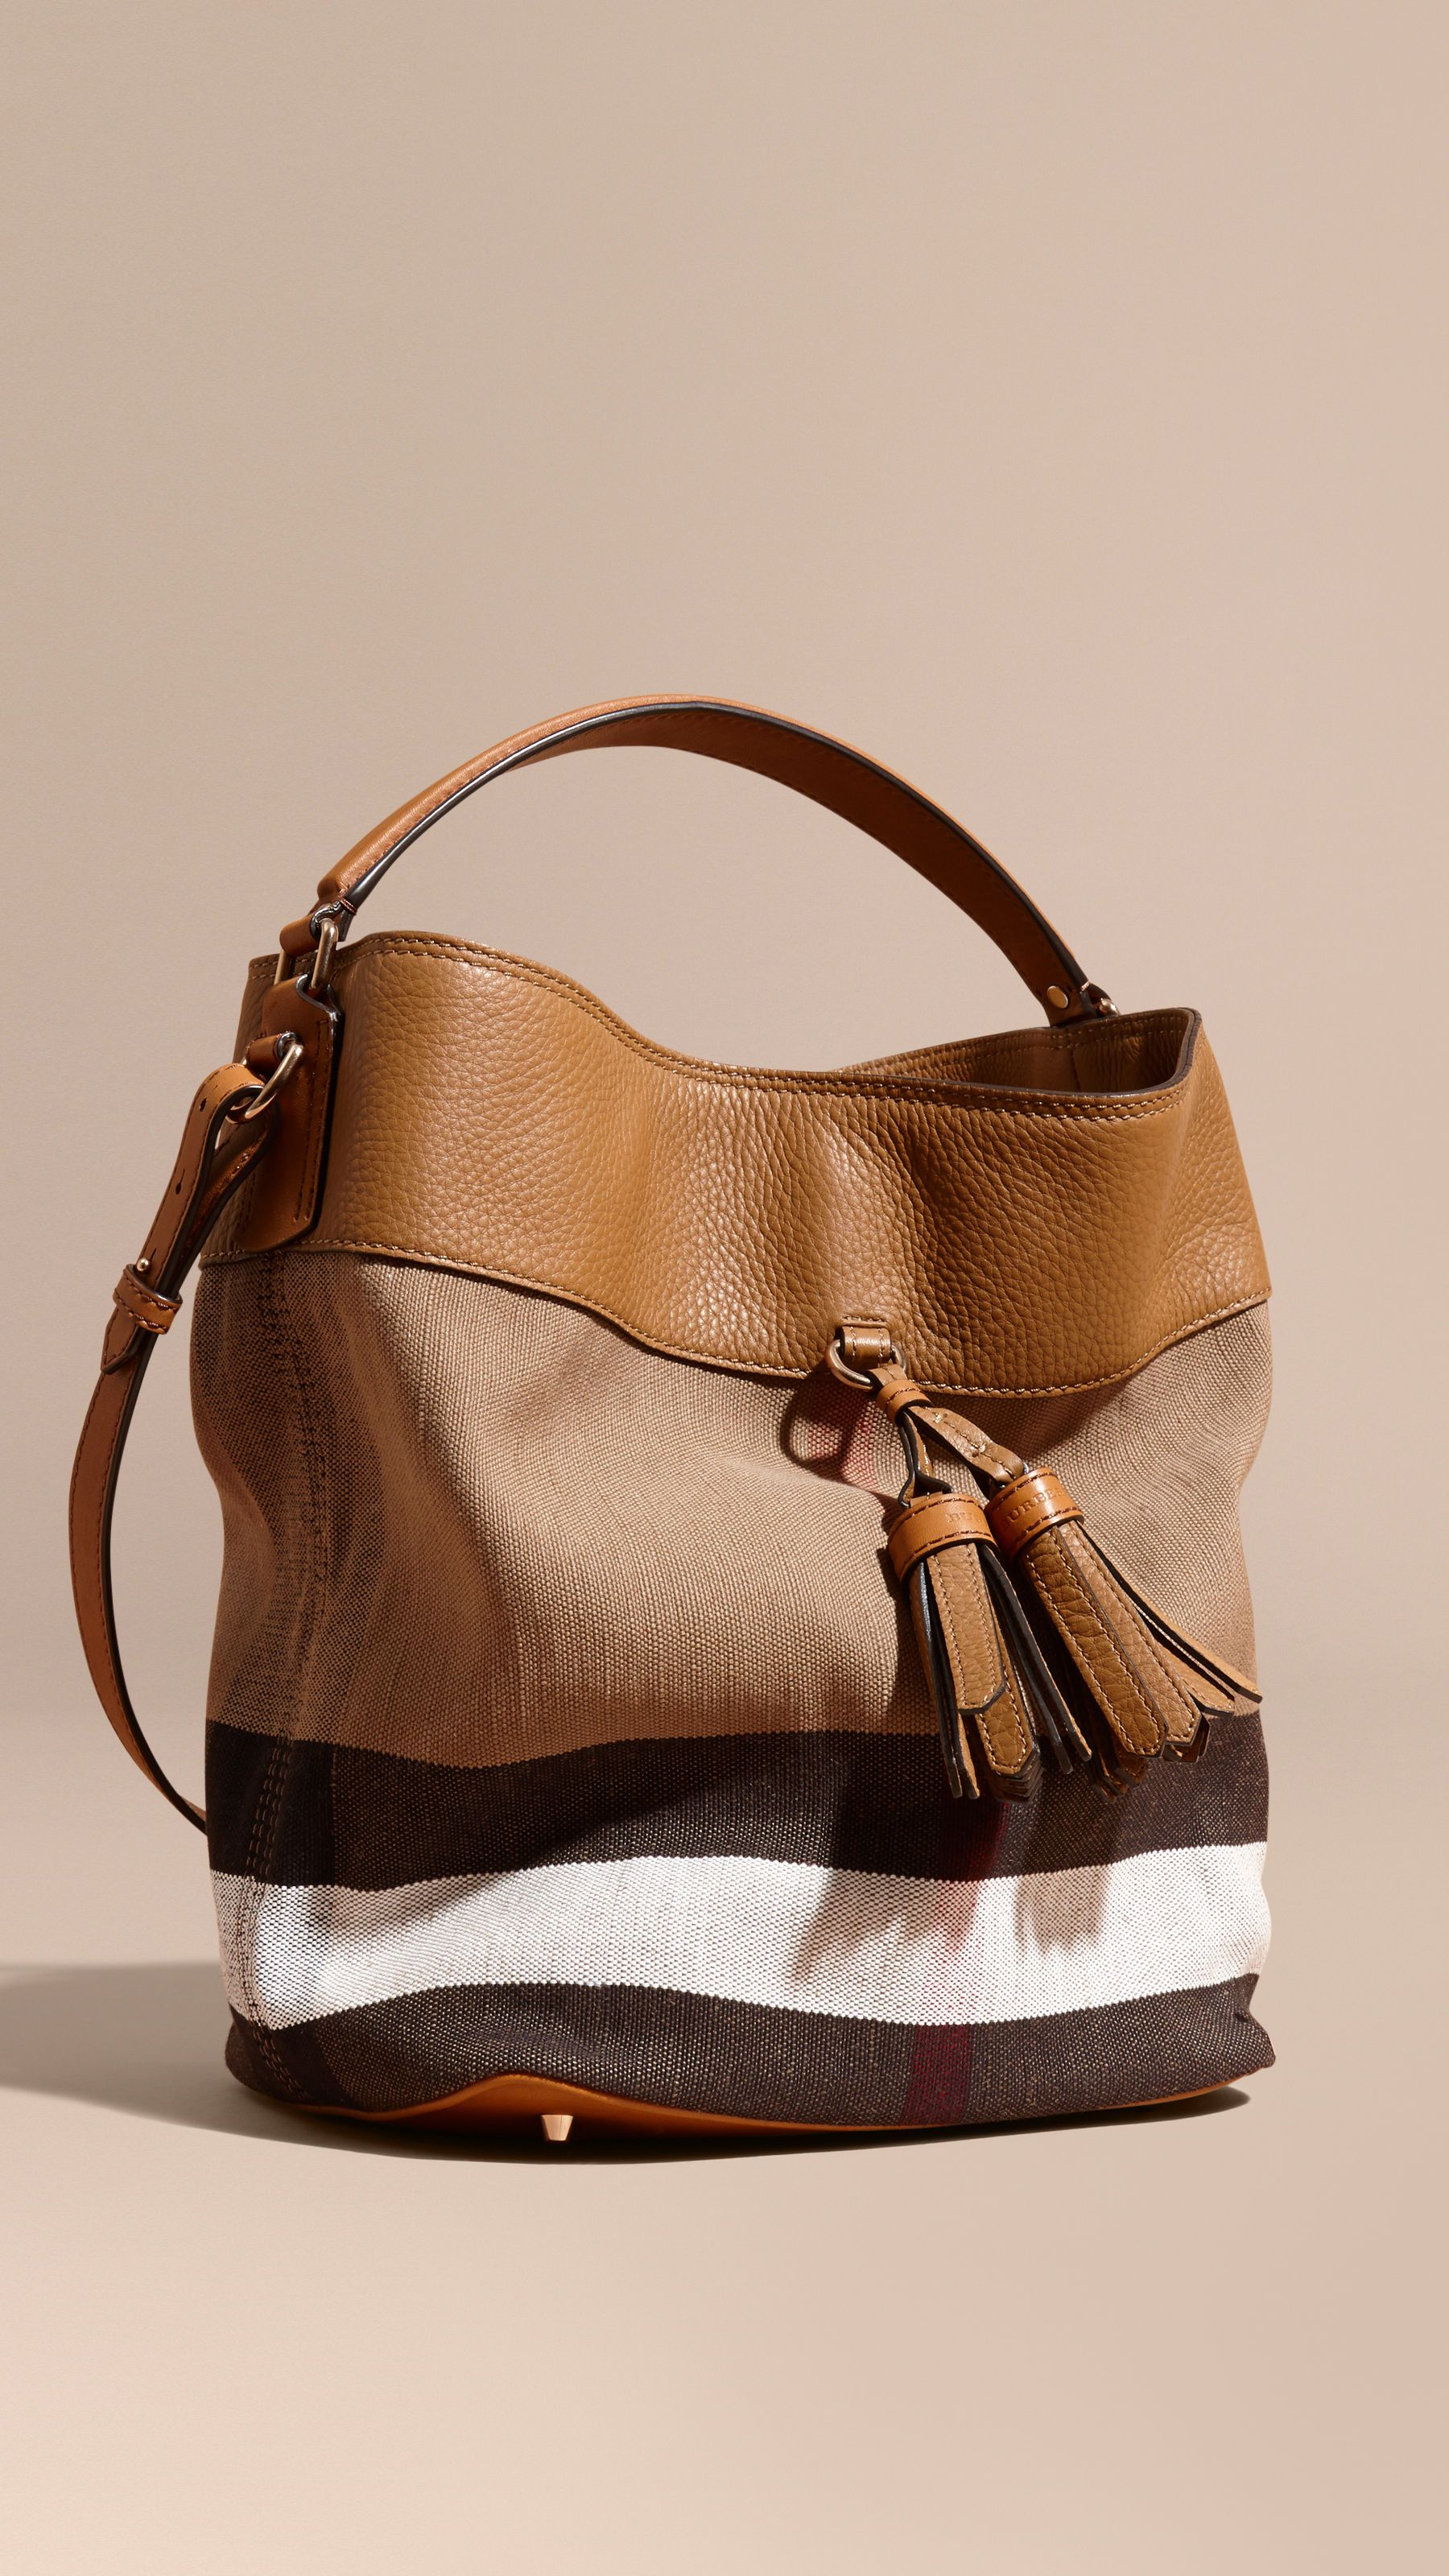 The Medium Ashby in Canvas Check and Leather Saddle Brown   Burberry ... 46039cc529